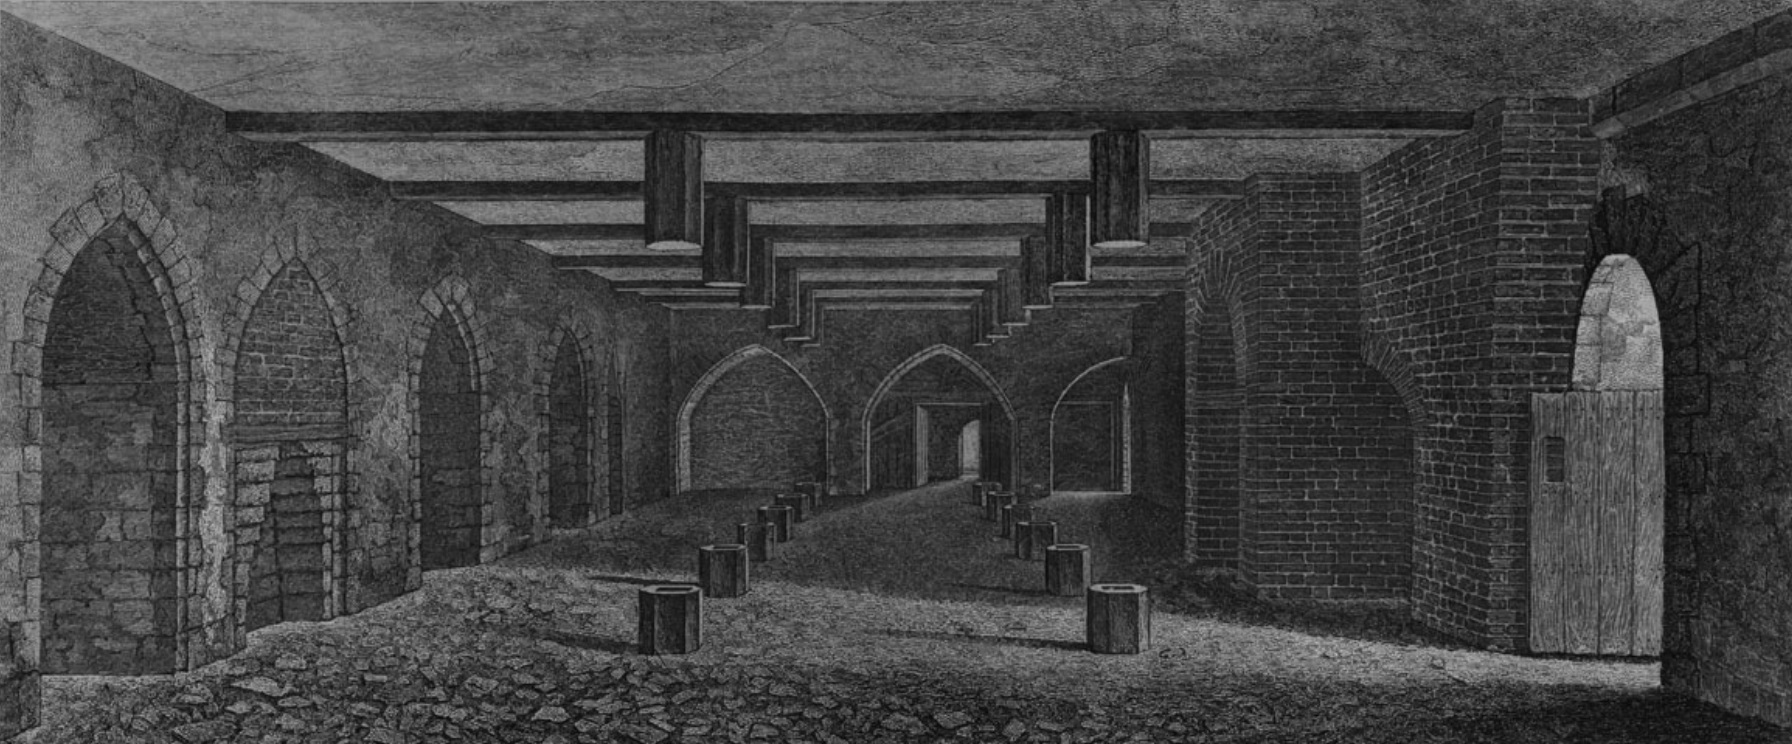 gunpowder_plot_parliament_cellar-1